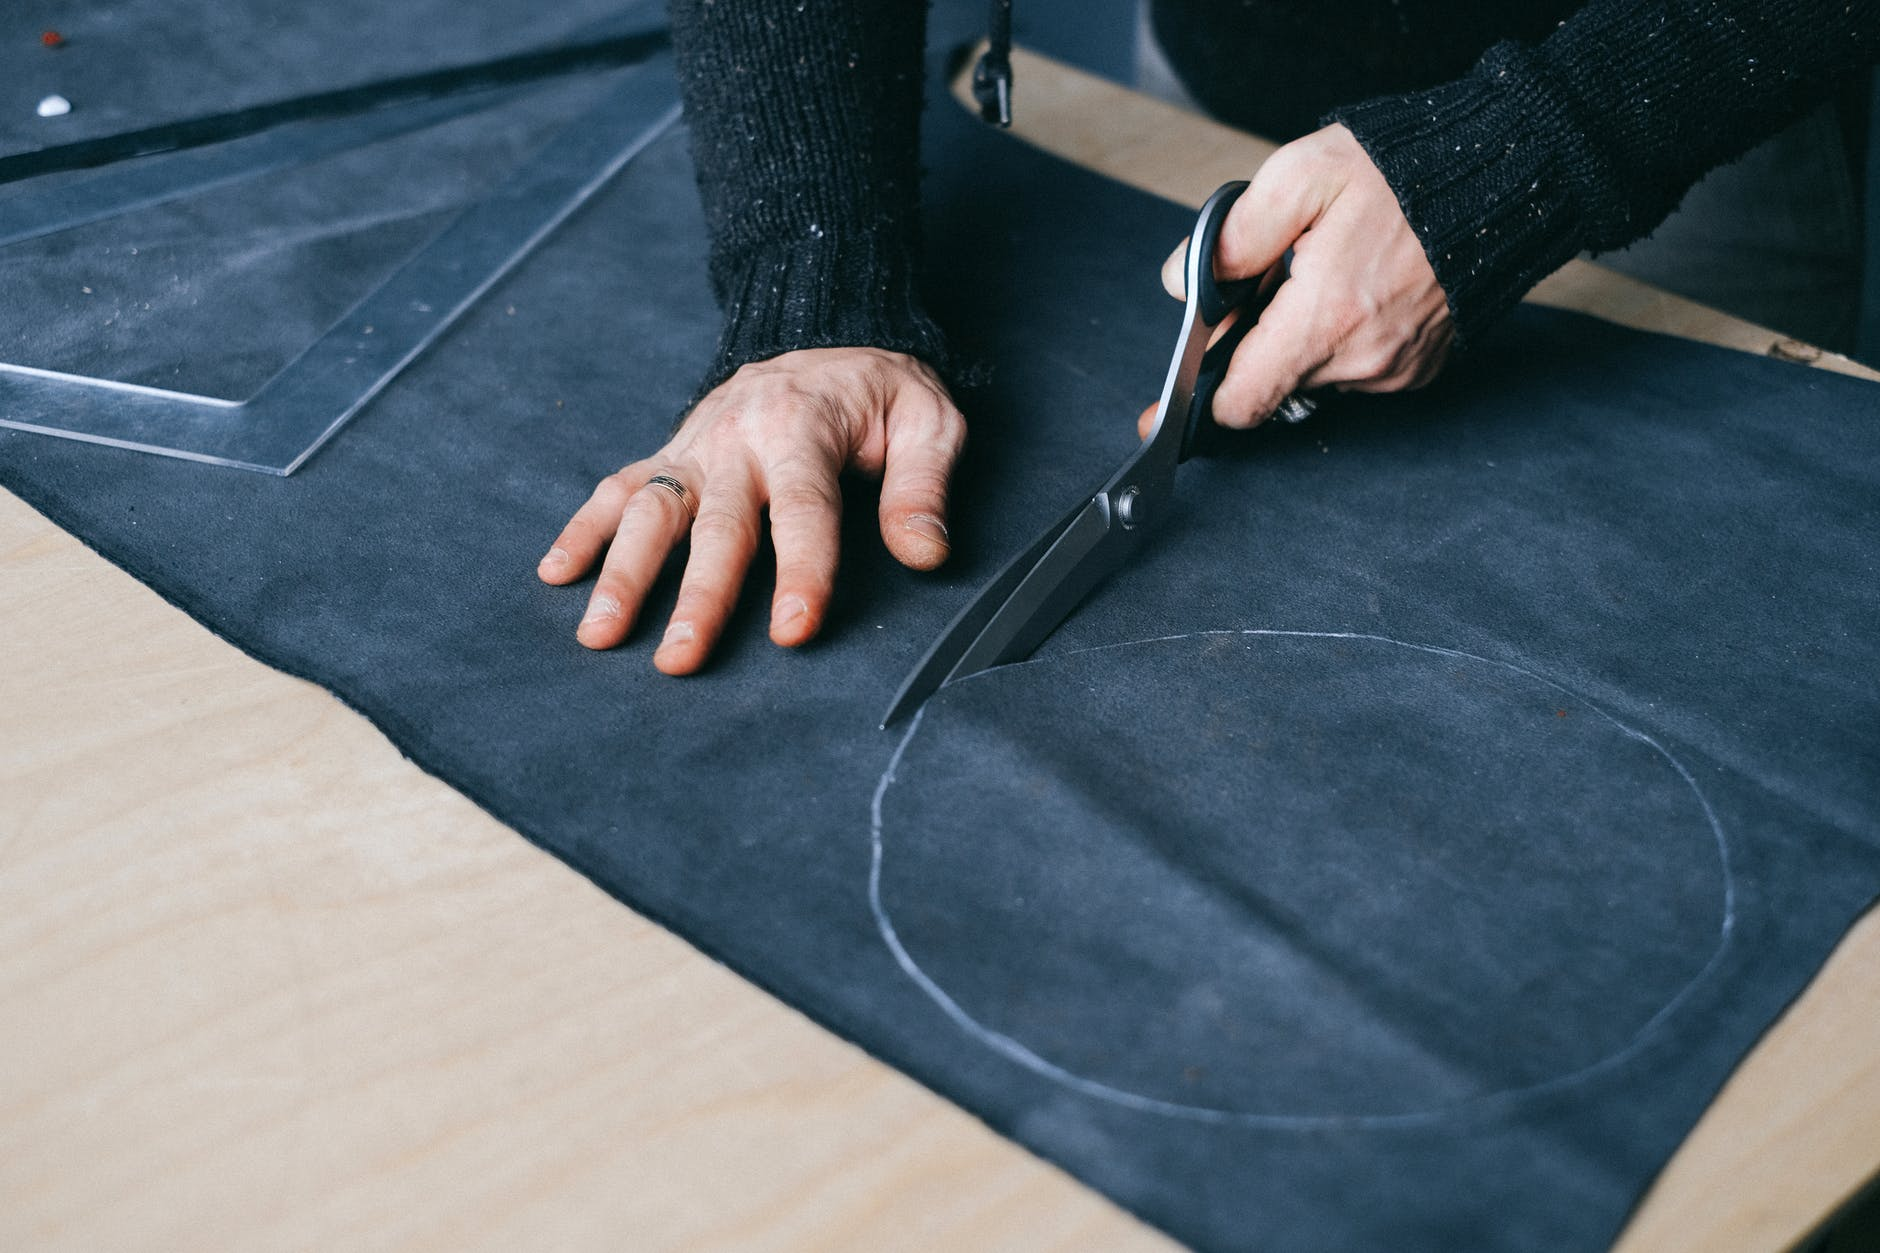 crop male artisan cutting piece of fabric at workbench